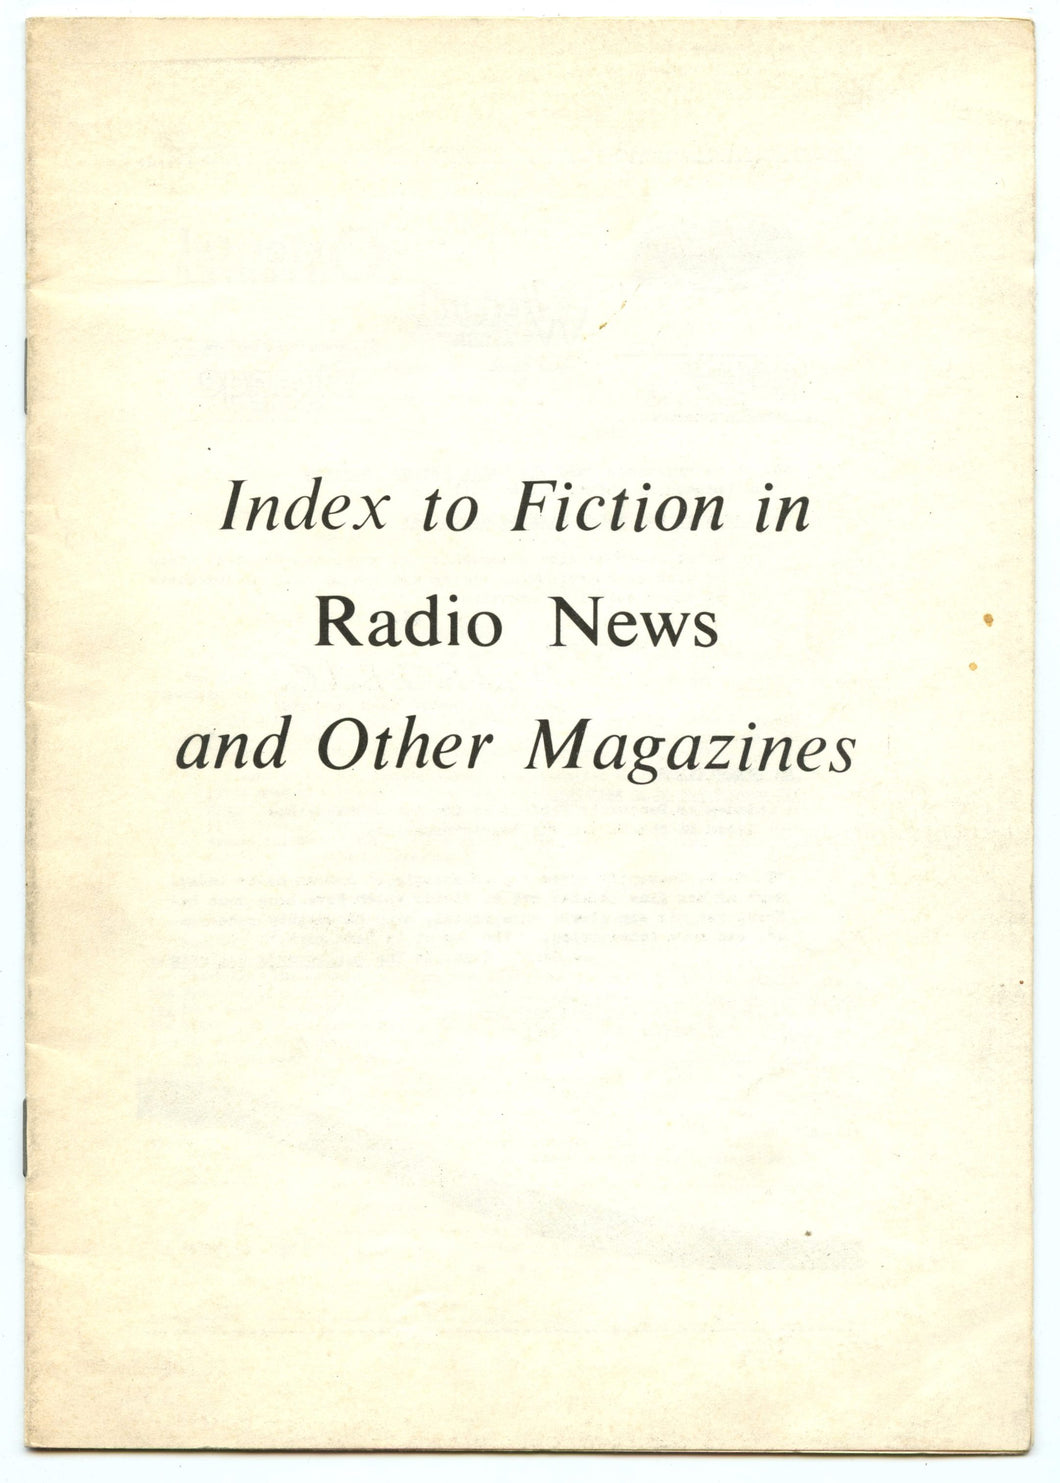 Index to Fiction in Radio News and Other Magazines